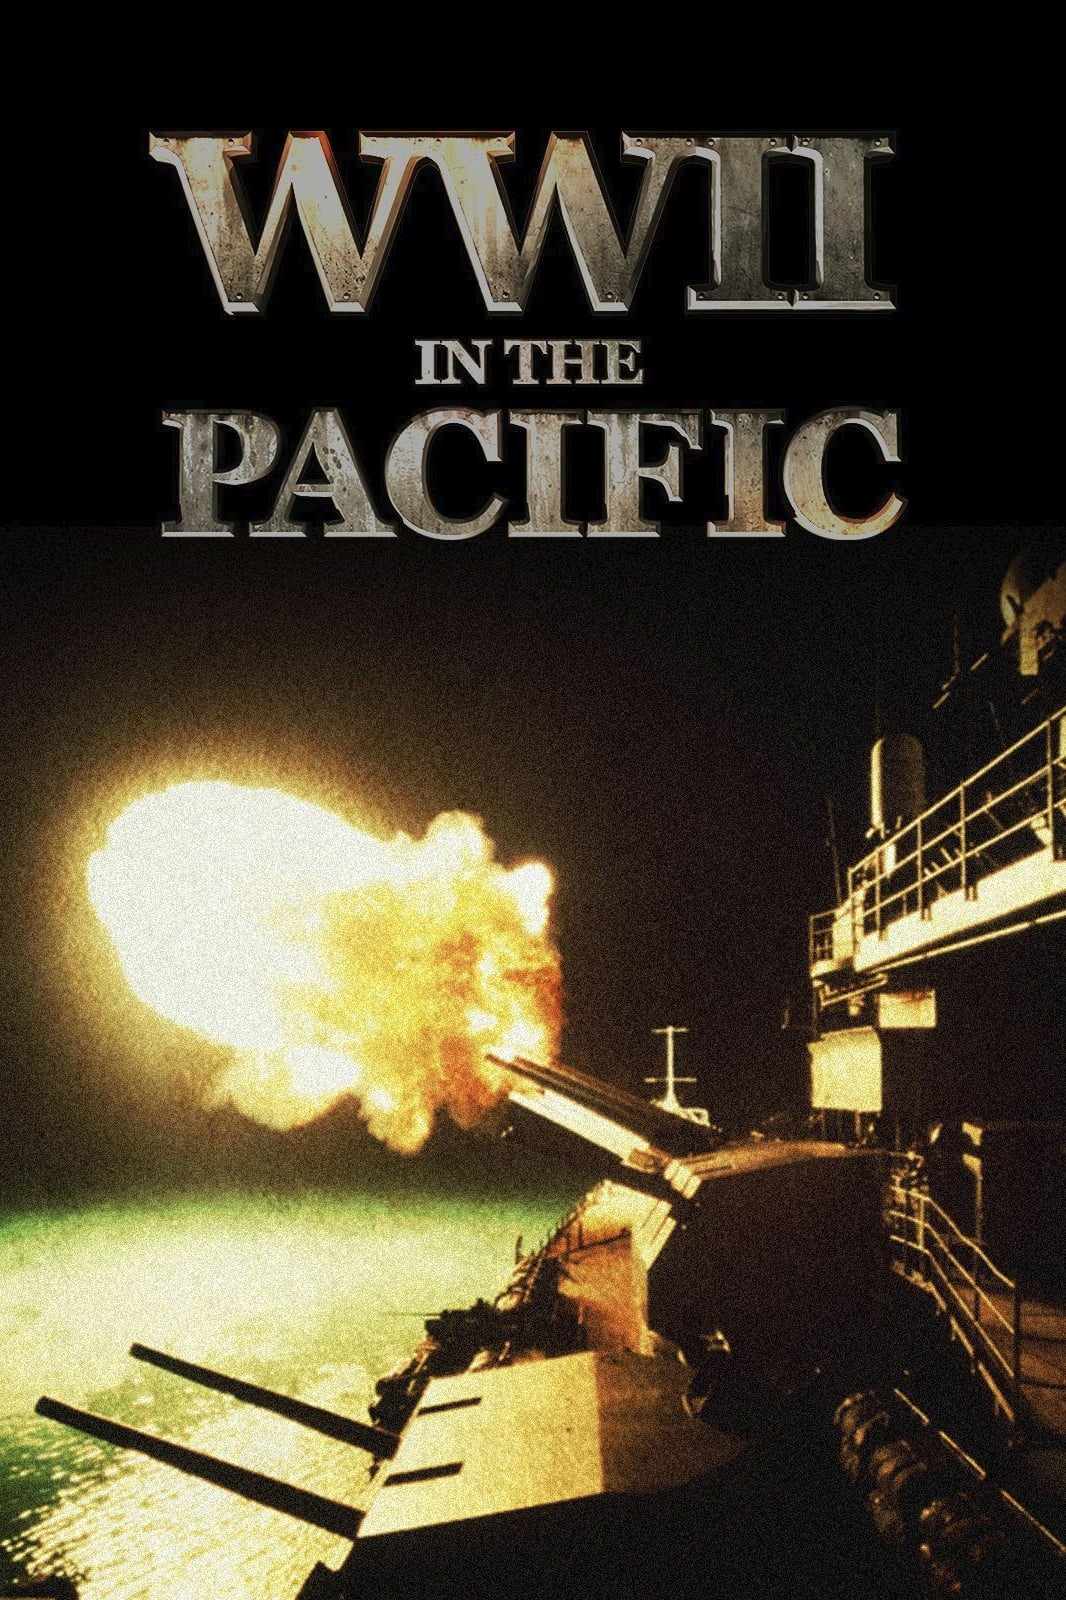 WWII in the Pacific (2015)